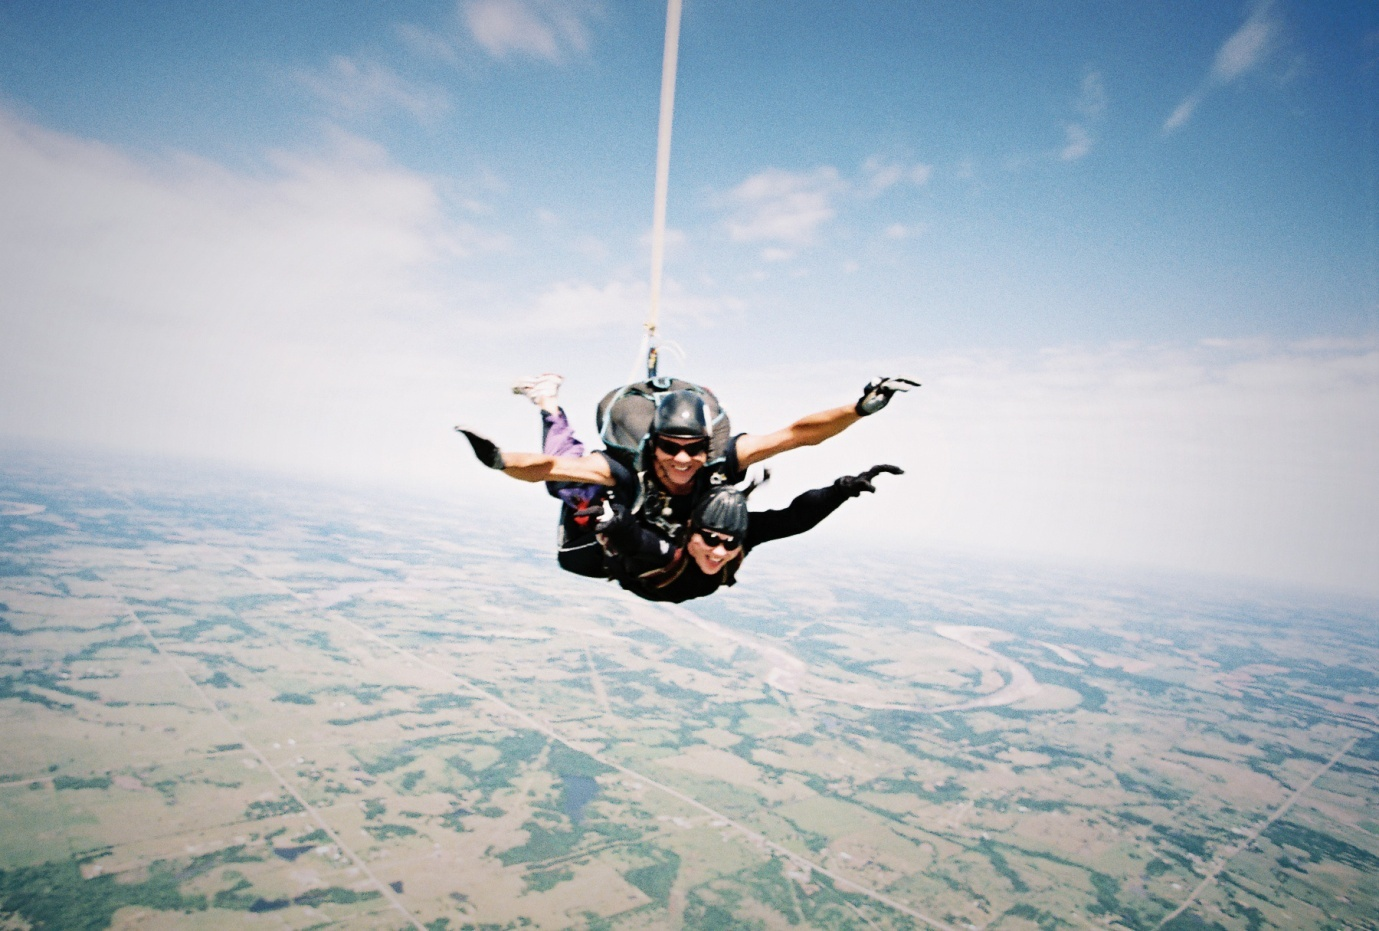 Extreme Sports - Skydiving